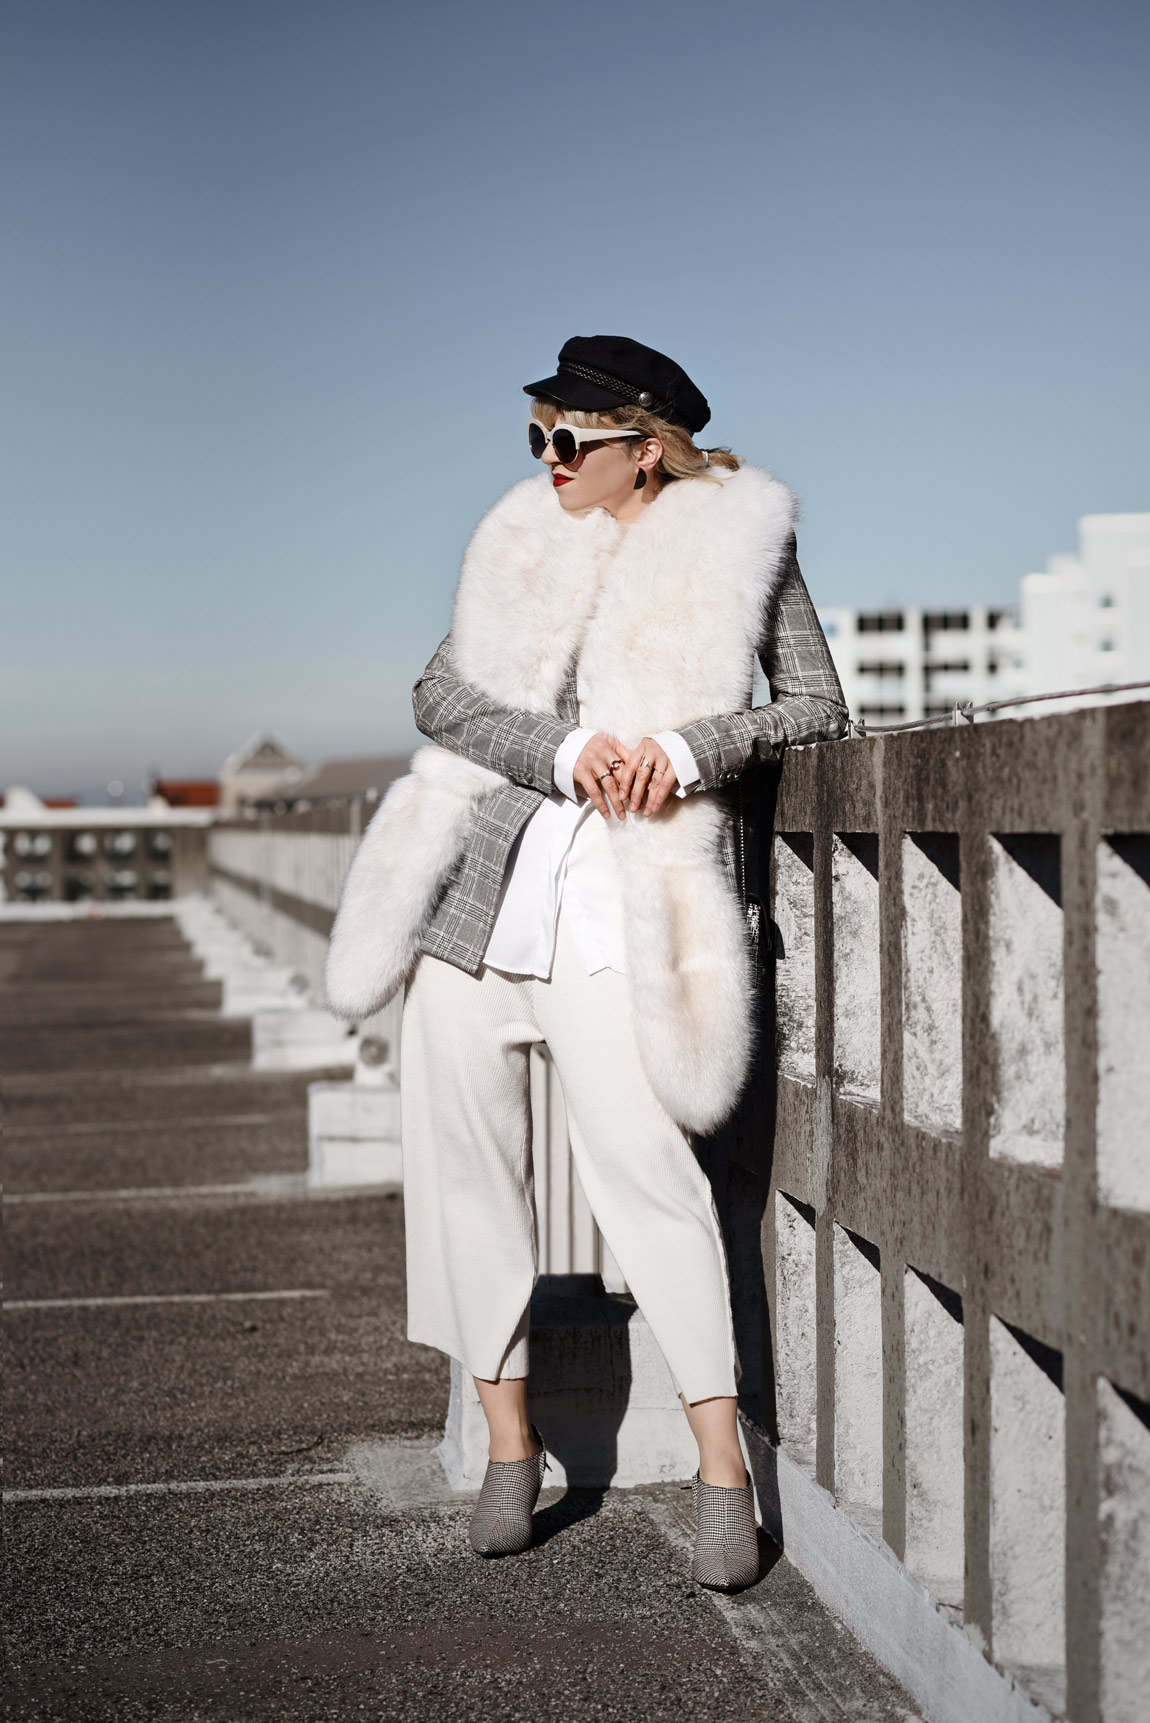 kunstpelz, stola, outfit, fakefur, white, culotte, ootd, streetstyle, fashionblog, modeblogger, muenchen, berlin, zara